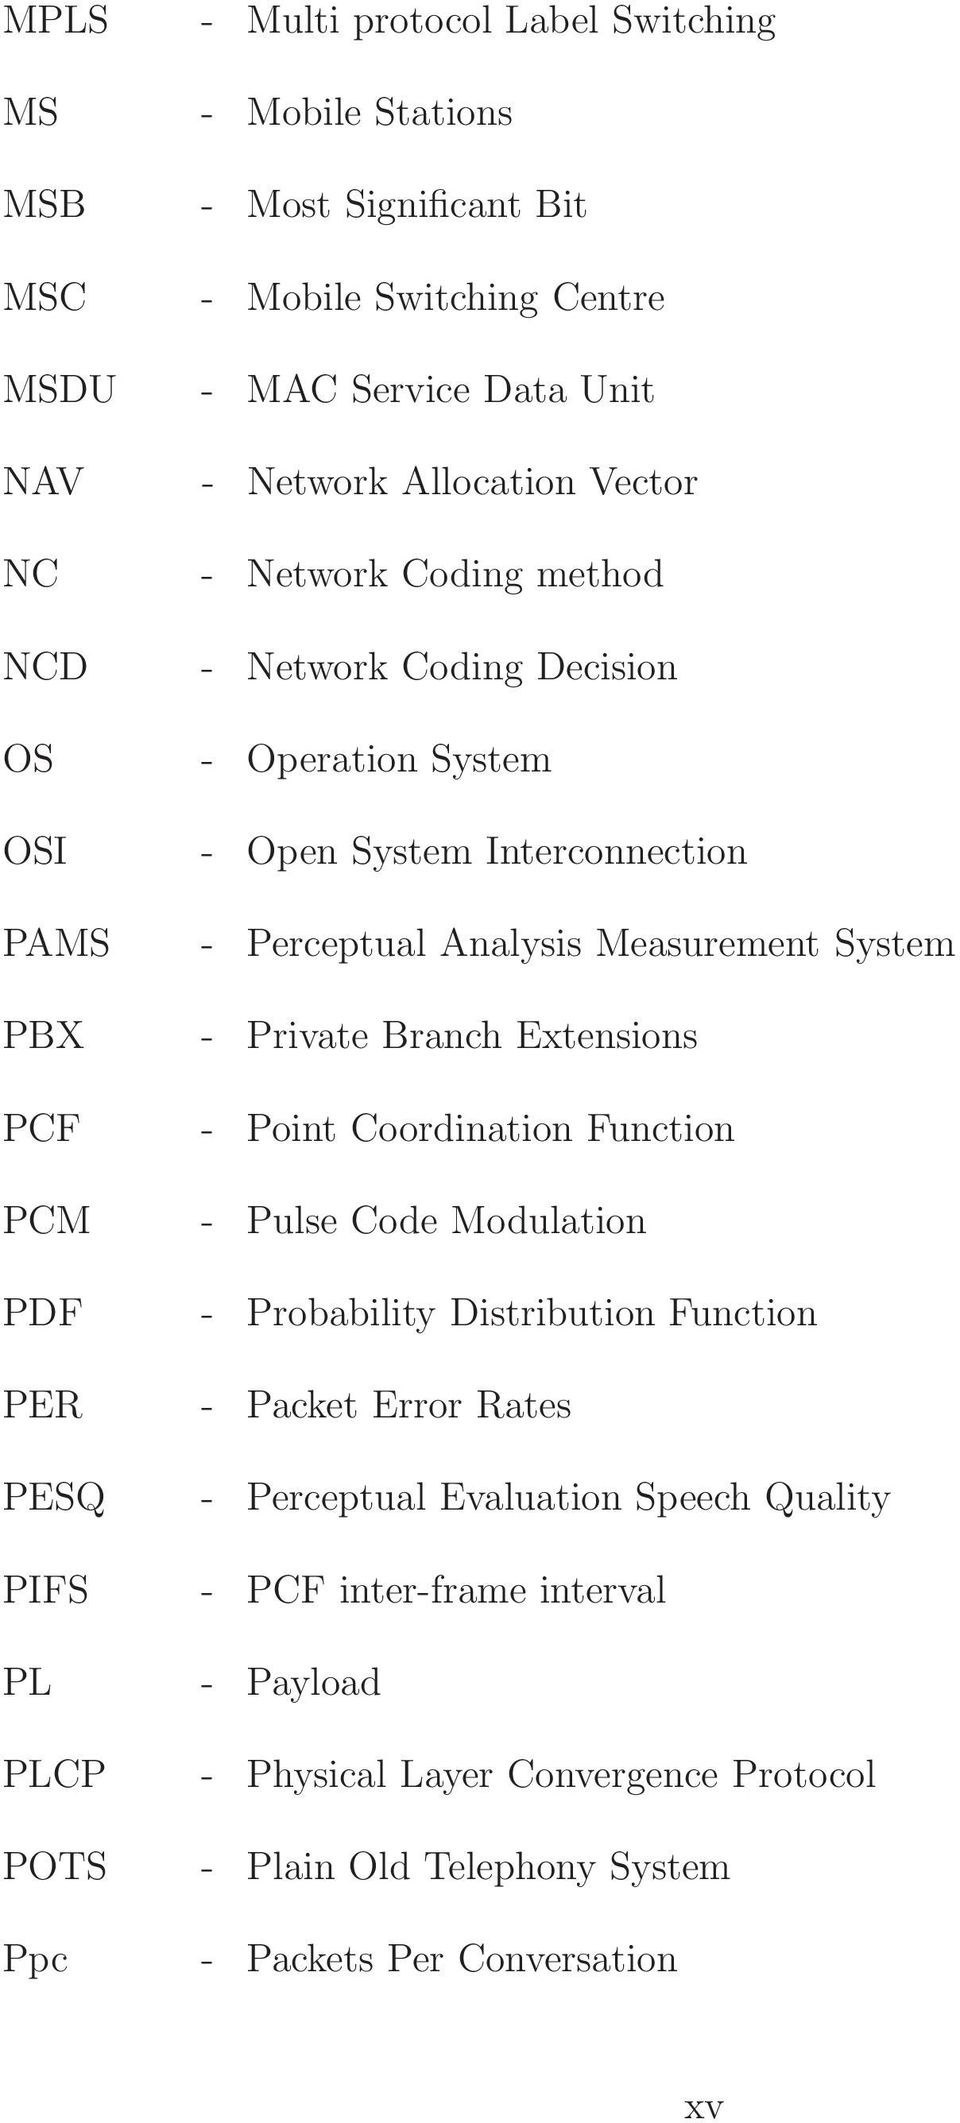 Perceptual Analysis Measurement System - Private Branch Extensions - Point Coordination Function - Pulse Code Modulation - Probability Distribution Function - Packet Error